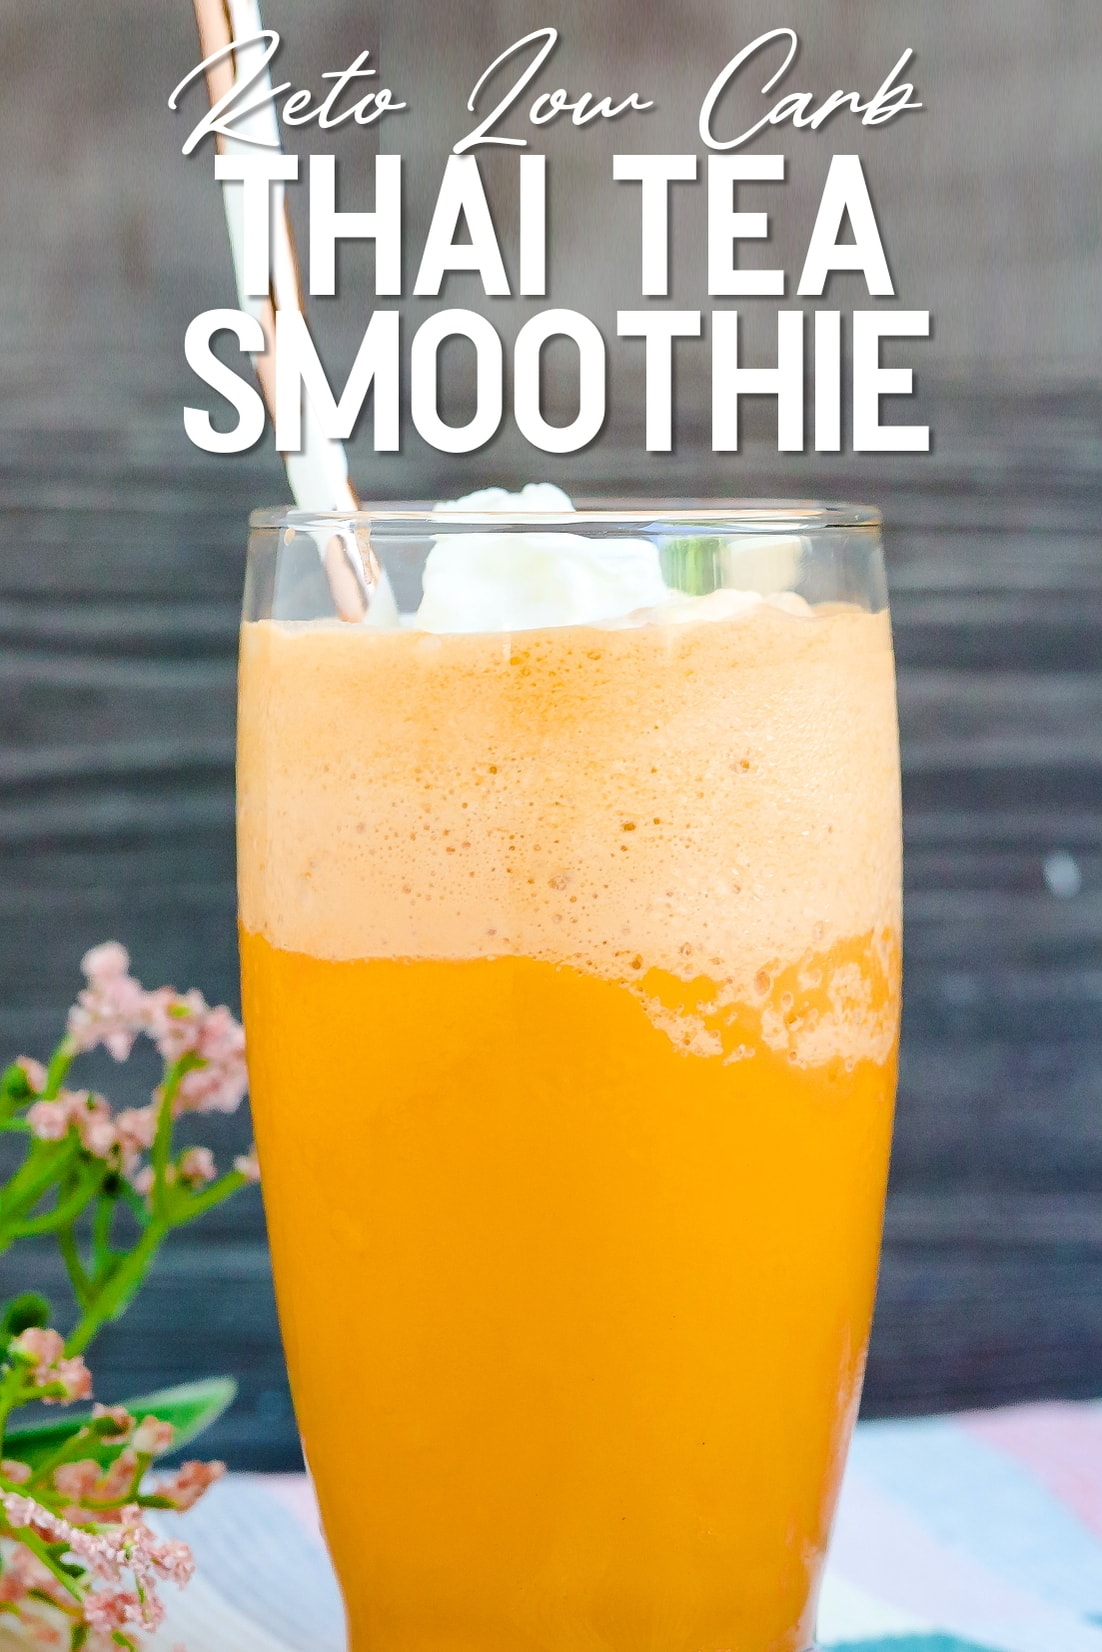 Keto Thai Tea Smoothie in a glass with a straw